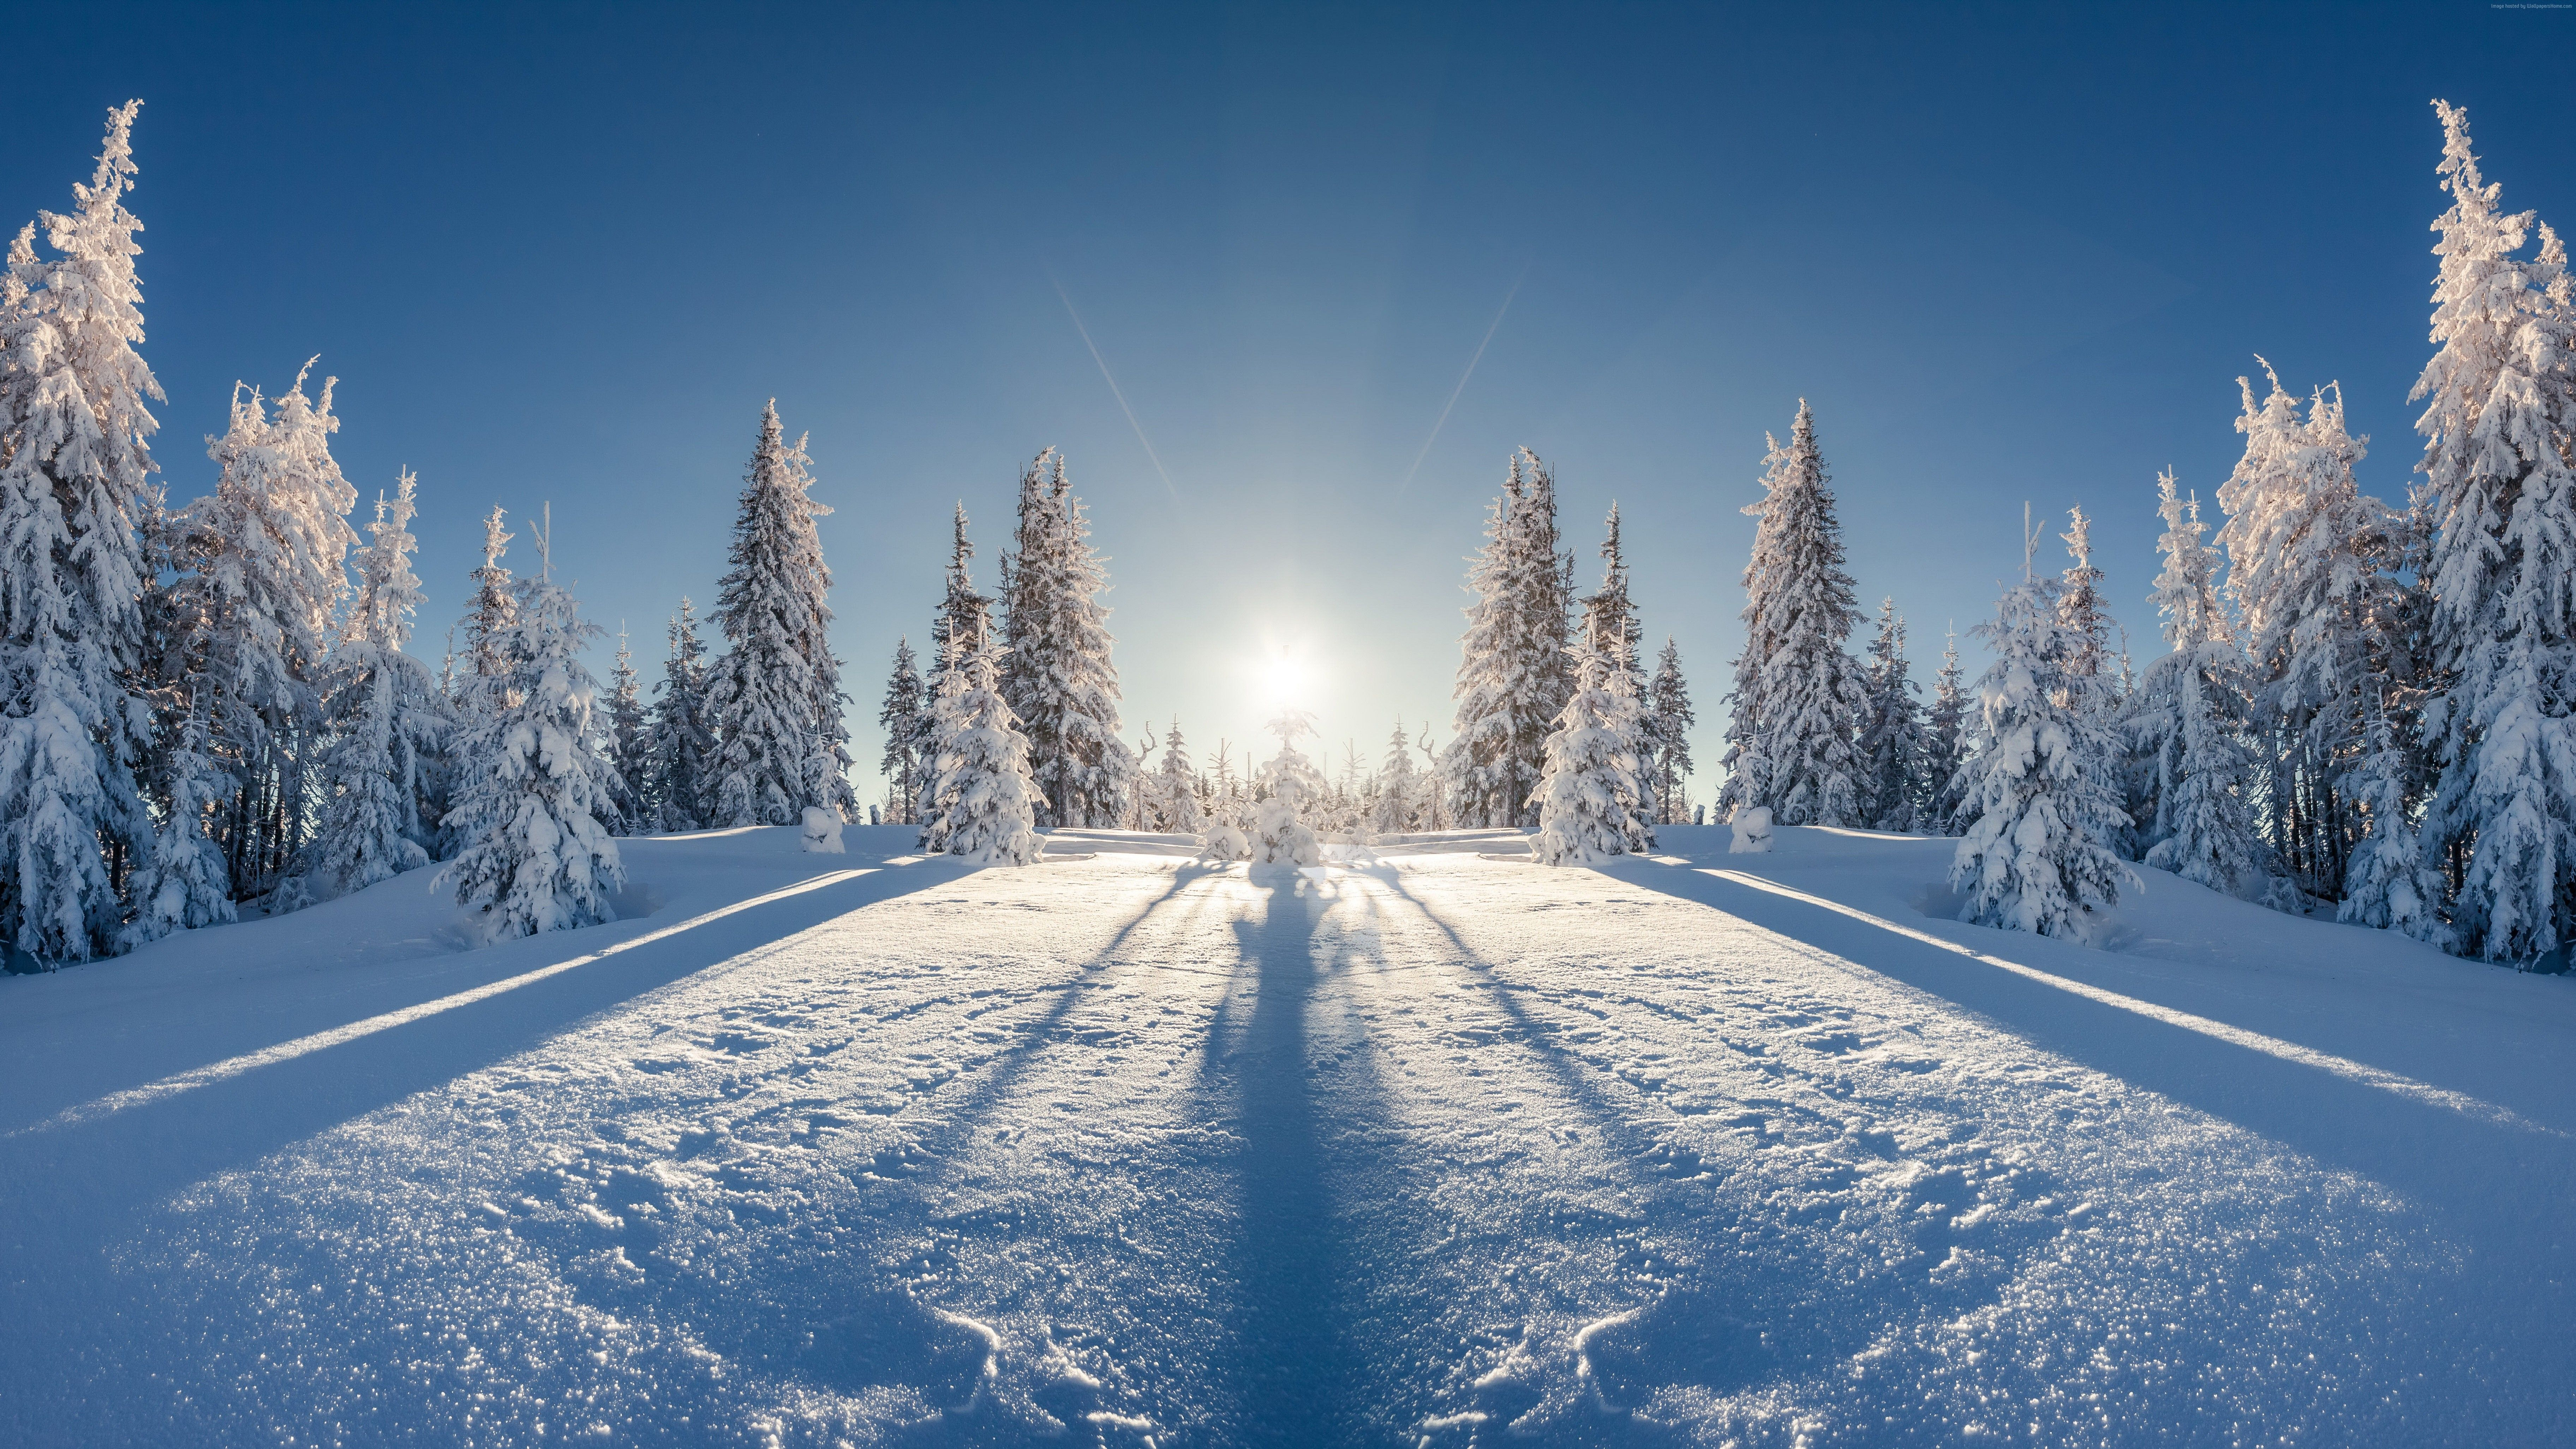 7297x4105 102767 #snow, #8k, #tree, #forest, #winter | Nature ...